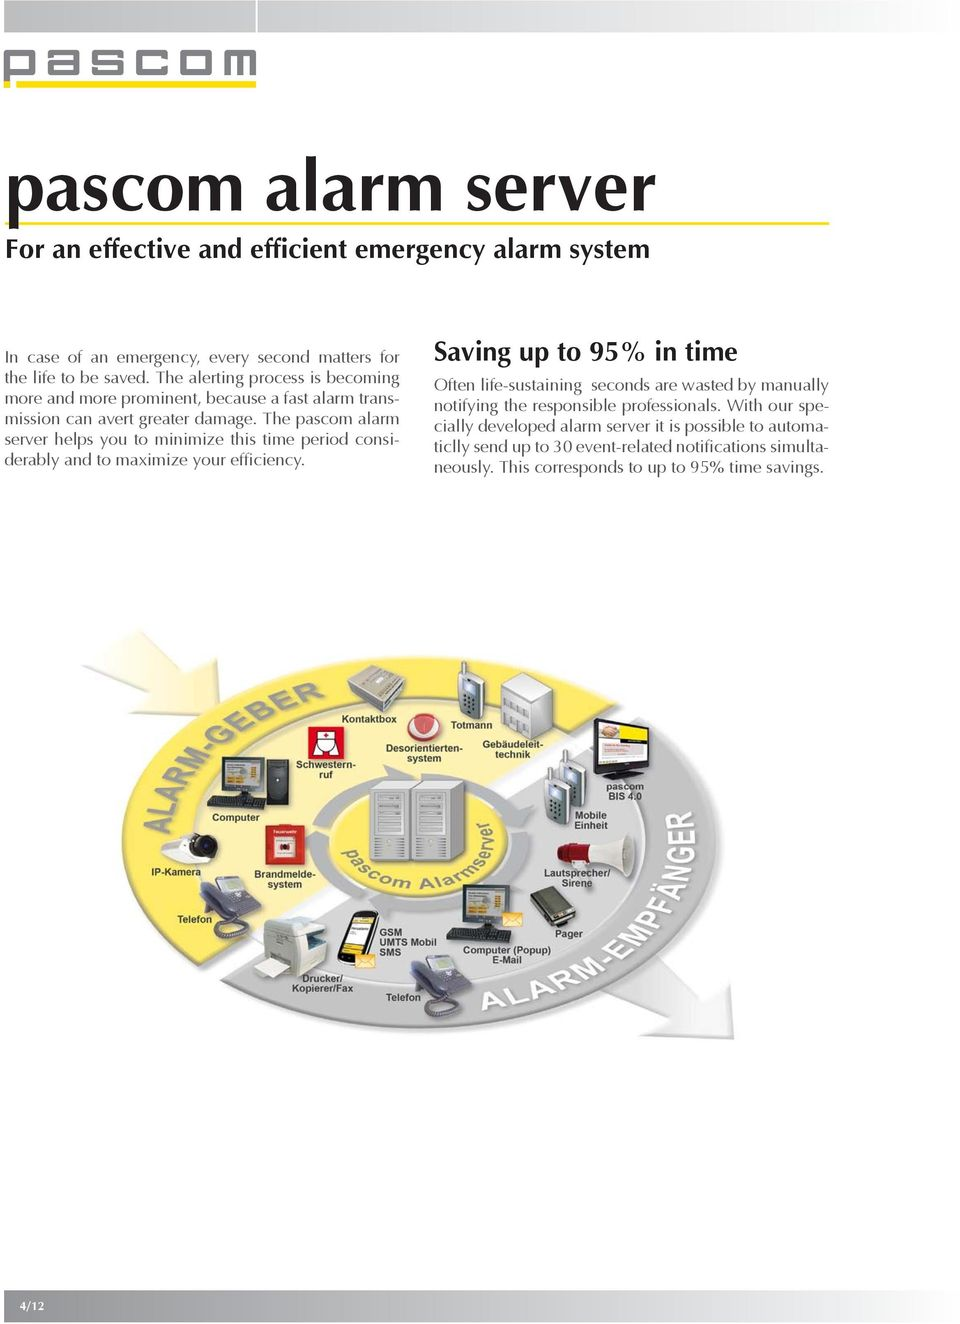 The pascom alarm server helps you to minimize this time period considerably and to maximize your efficiency.